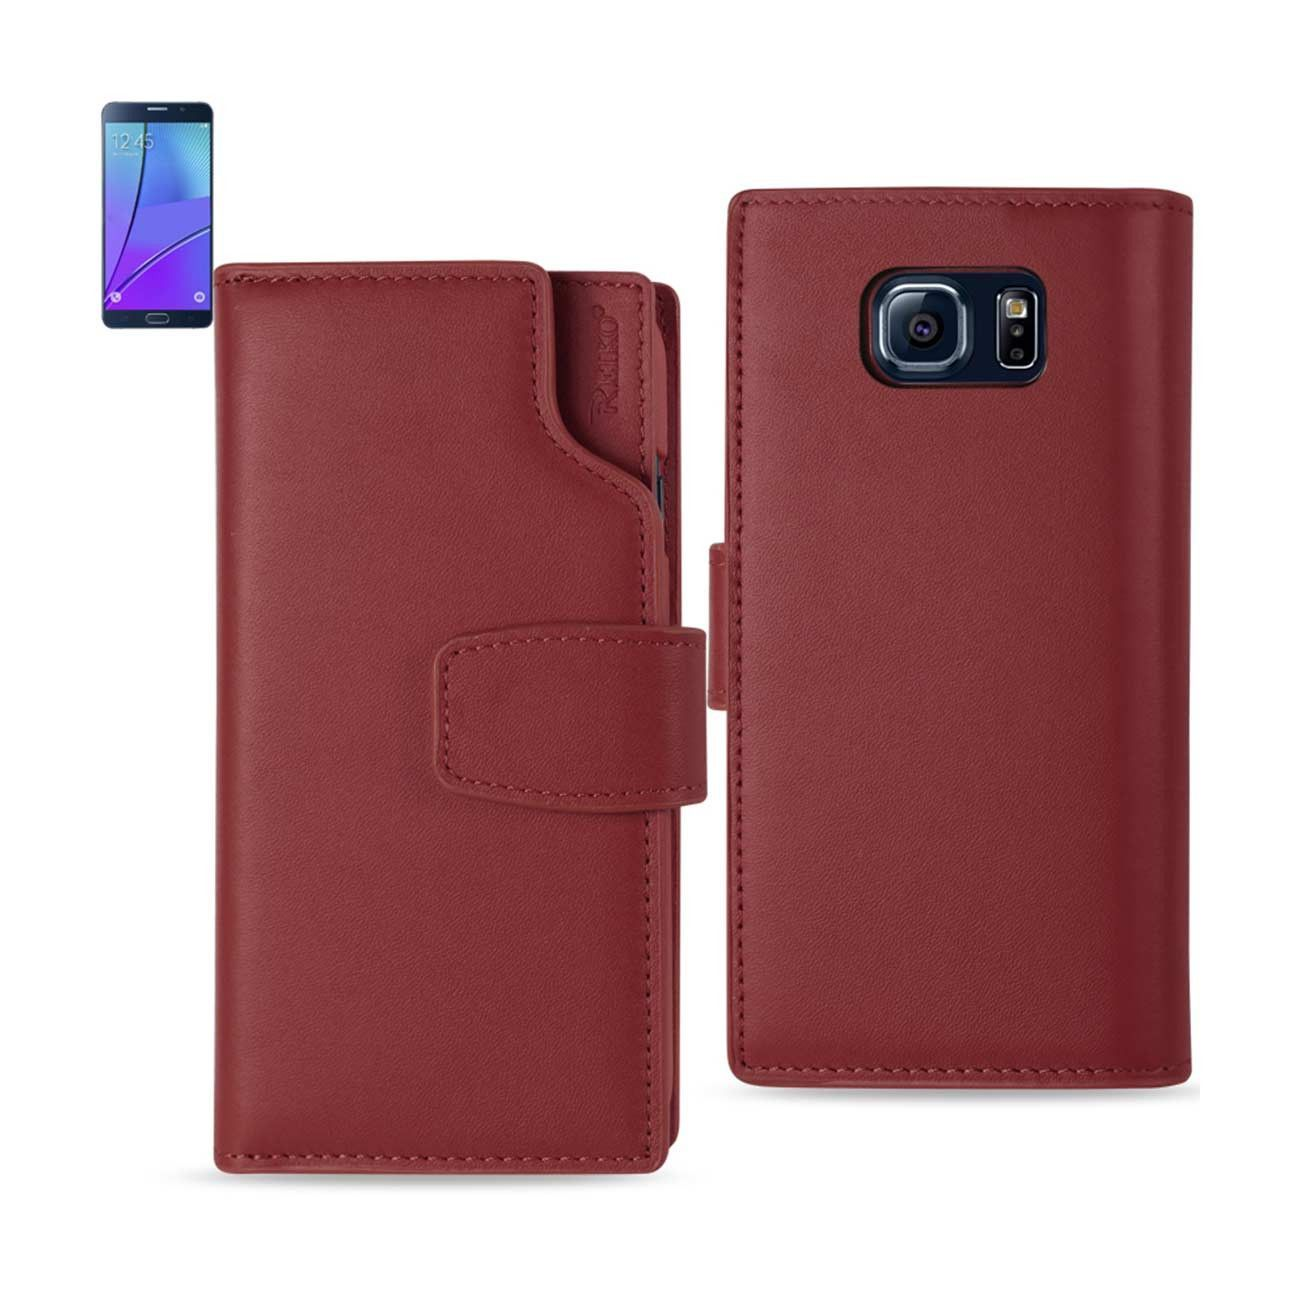 REIKO SAMSUNG GALAXY NOTE 5 GENUINE LEATHER WALLET CASE WITH OPEN THUMB CUT IN BURGUNDY